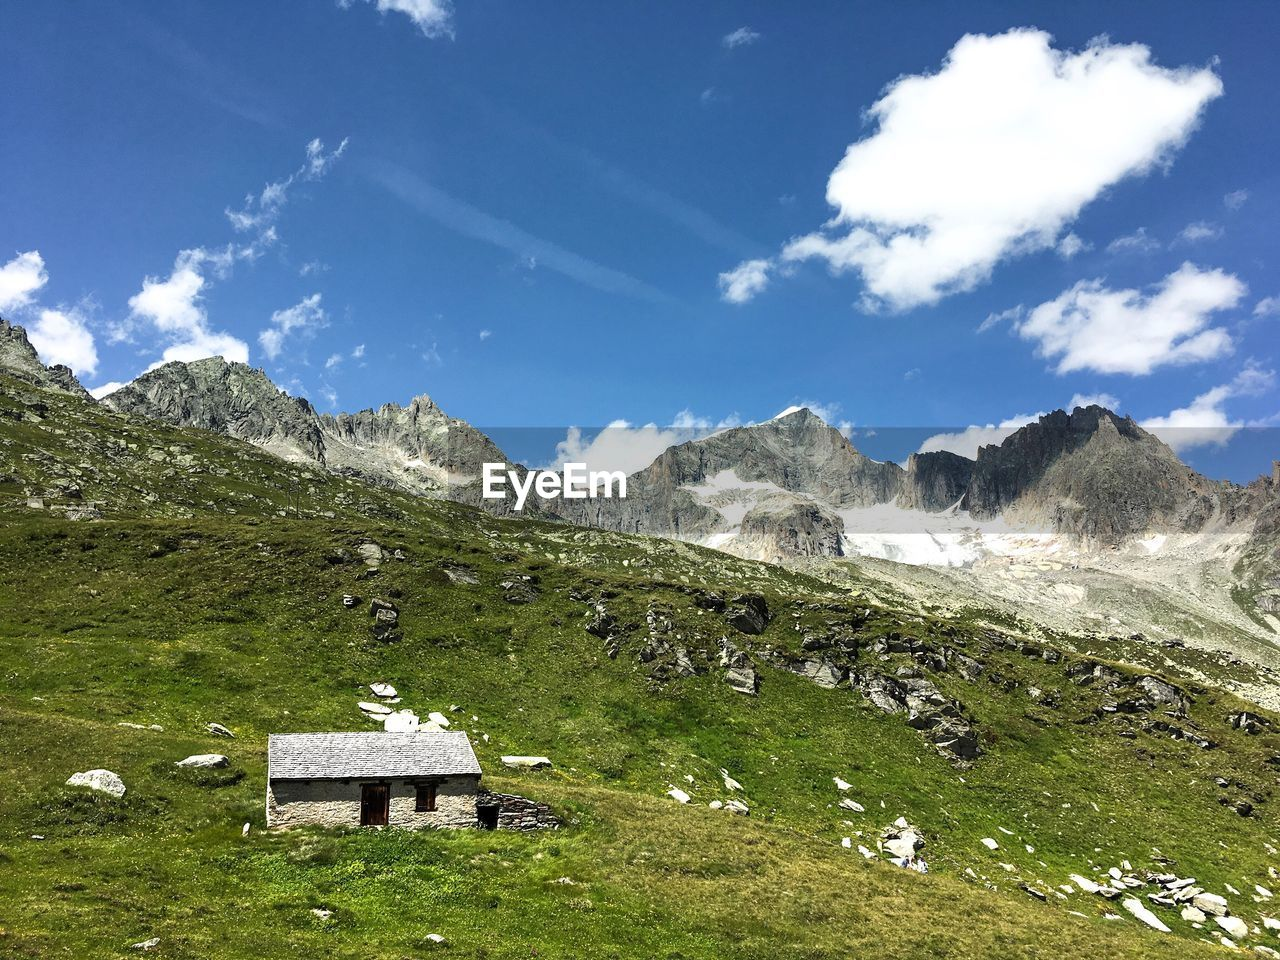 mountain, sky, nature, beauty in nature, scenics, landscape, mountain range, tranquility, tranquil scene, day, cloud - sky, outdoors, grass, built structure, no people, peak, building exterior, architecture, scenery